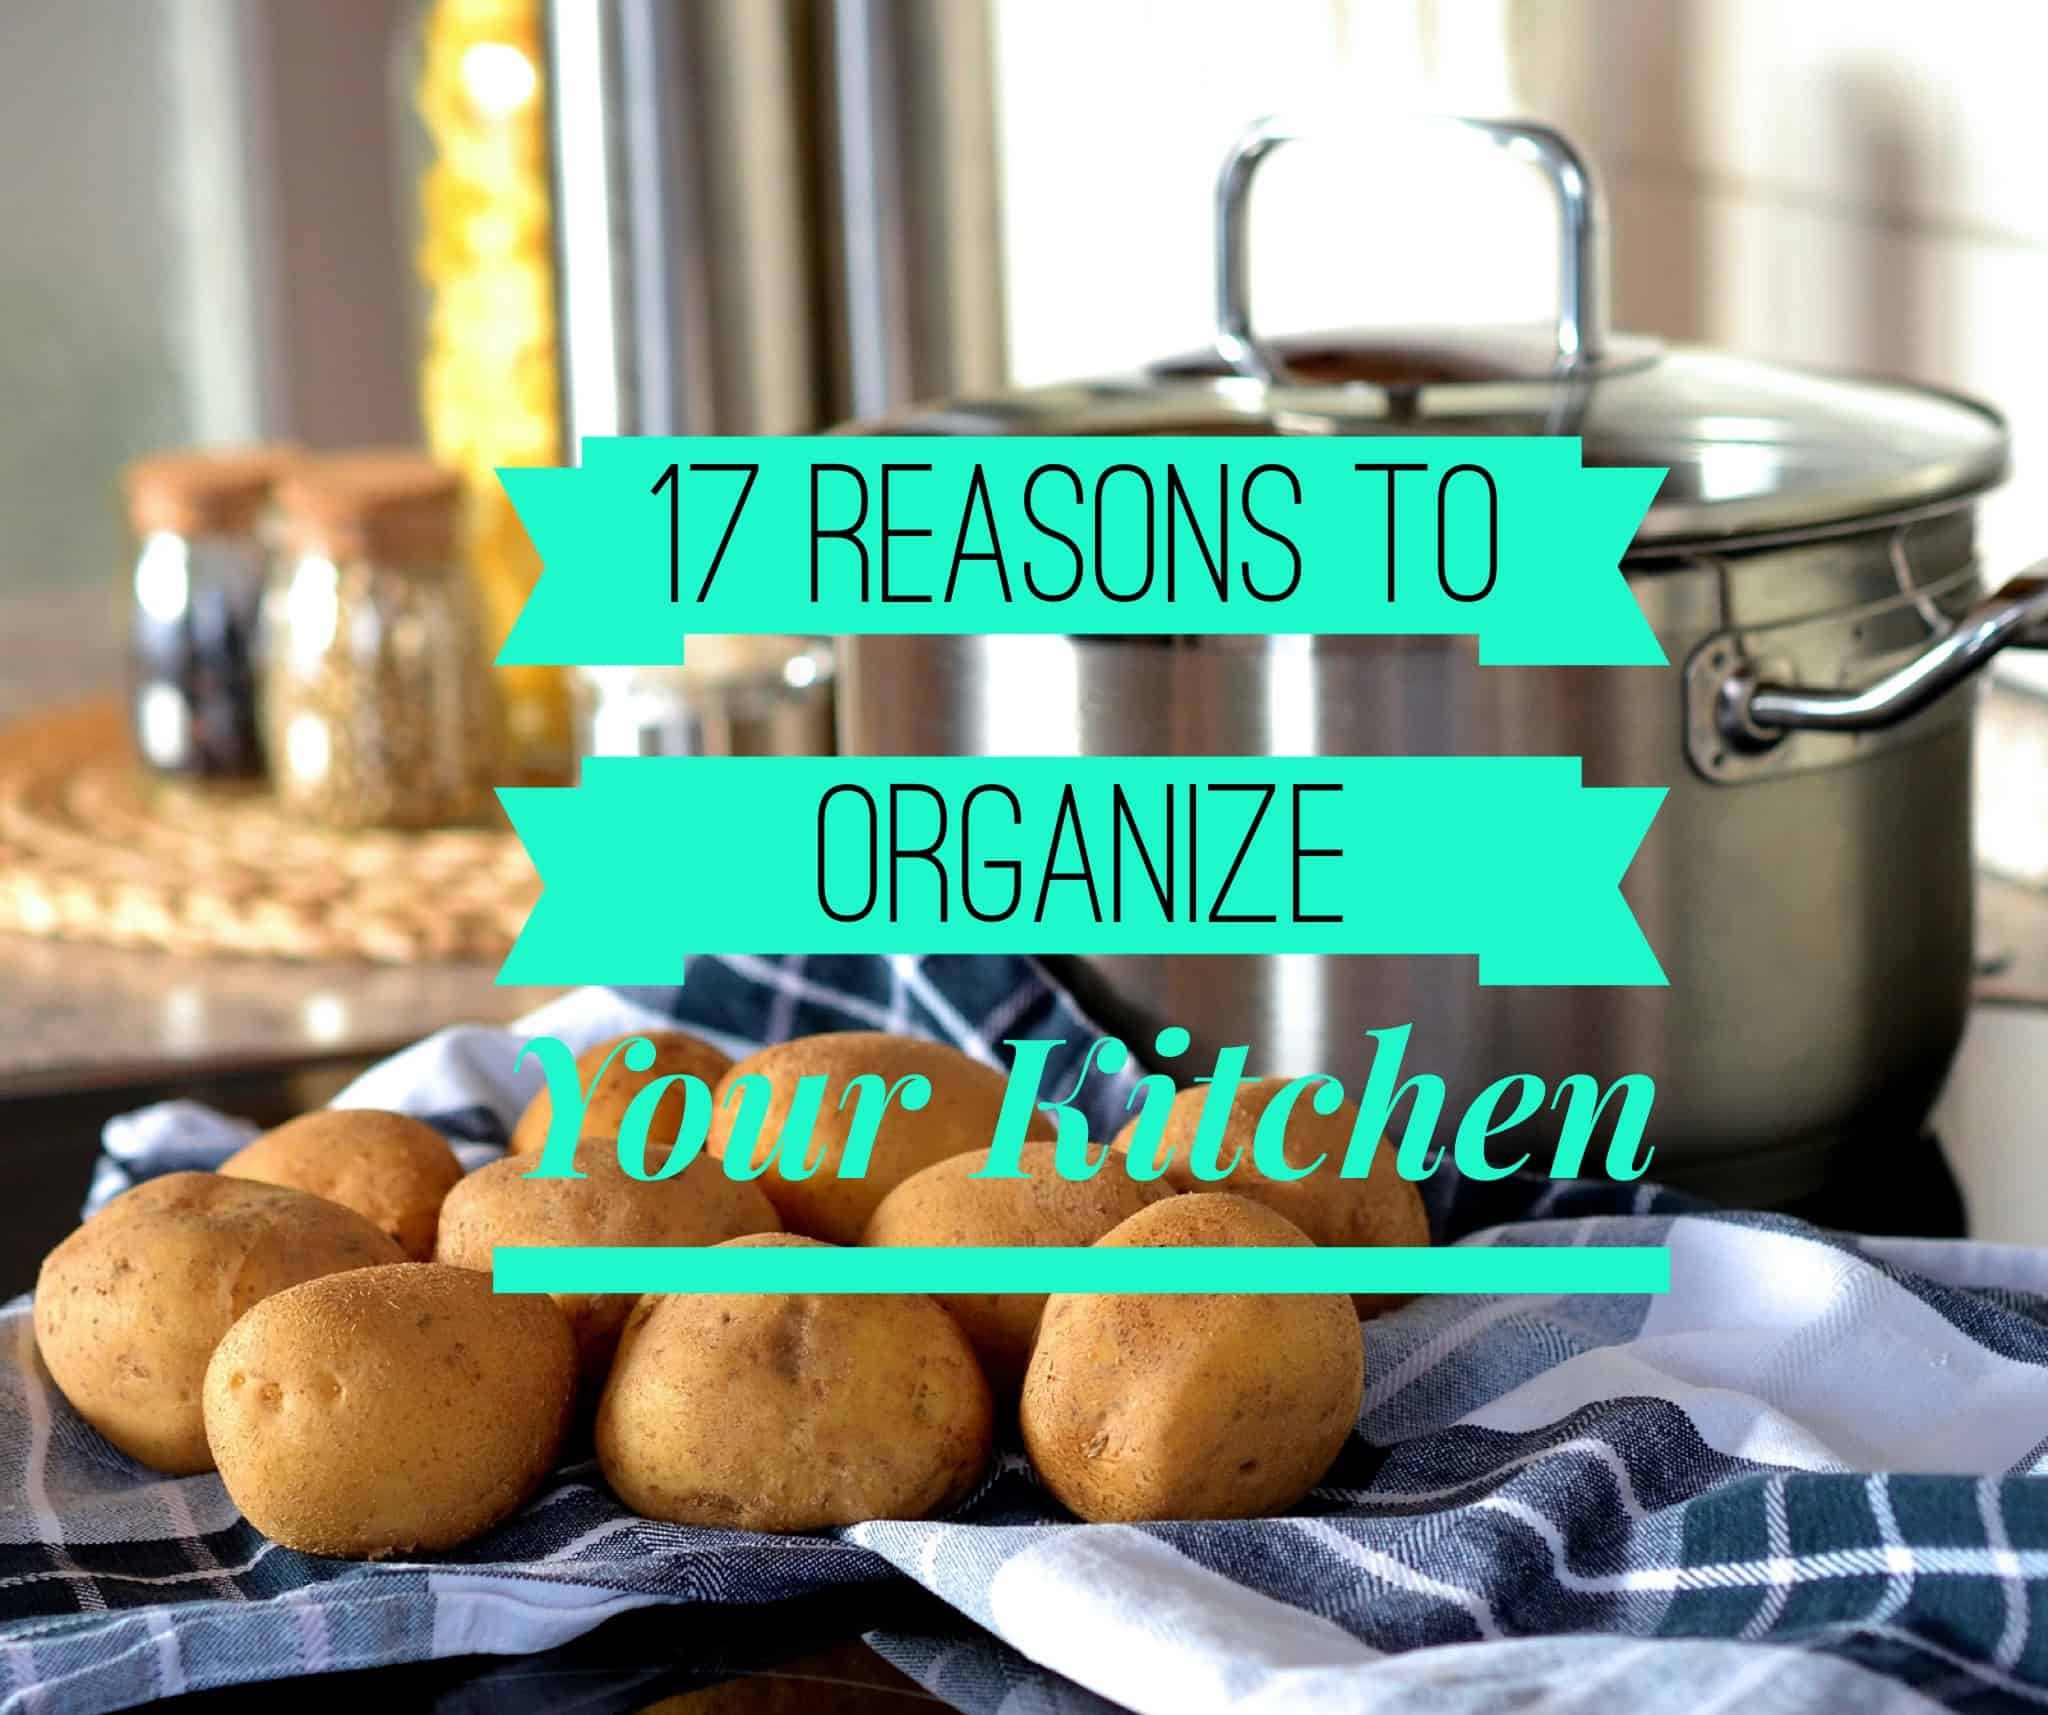 17 Reasons to Organize Your Kitchen Title